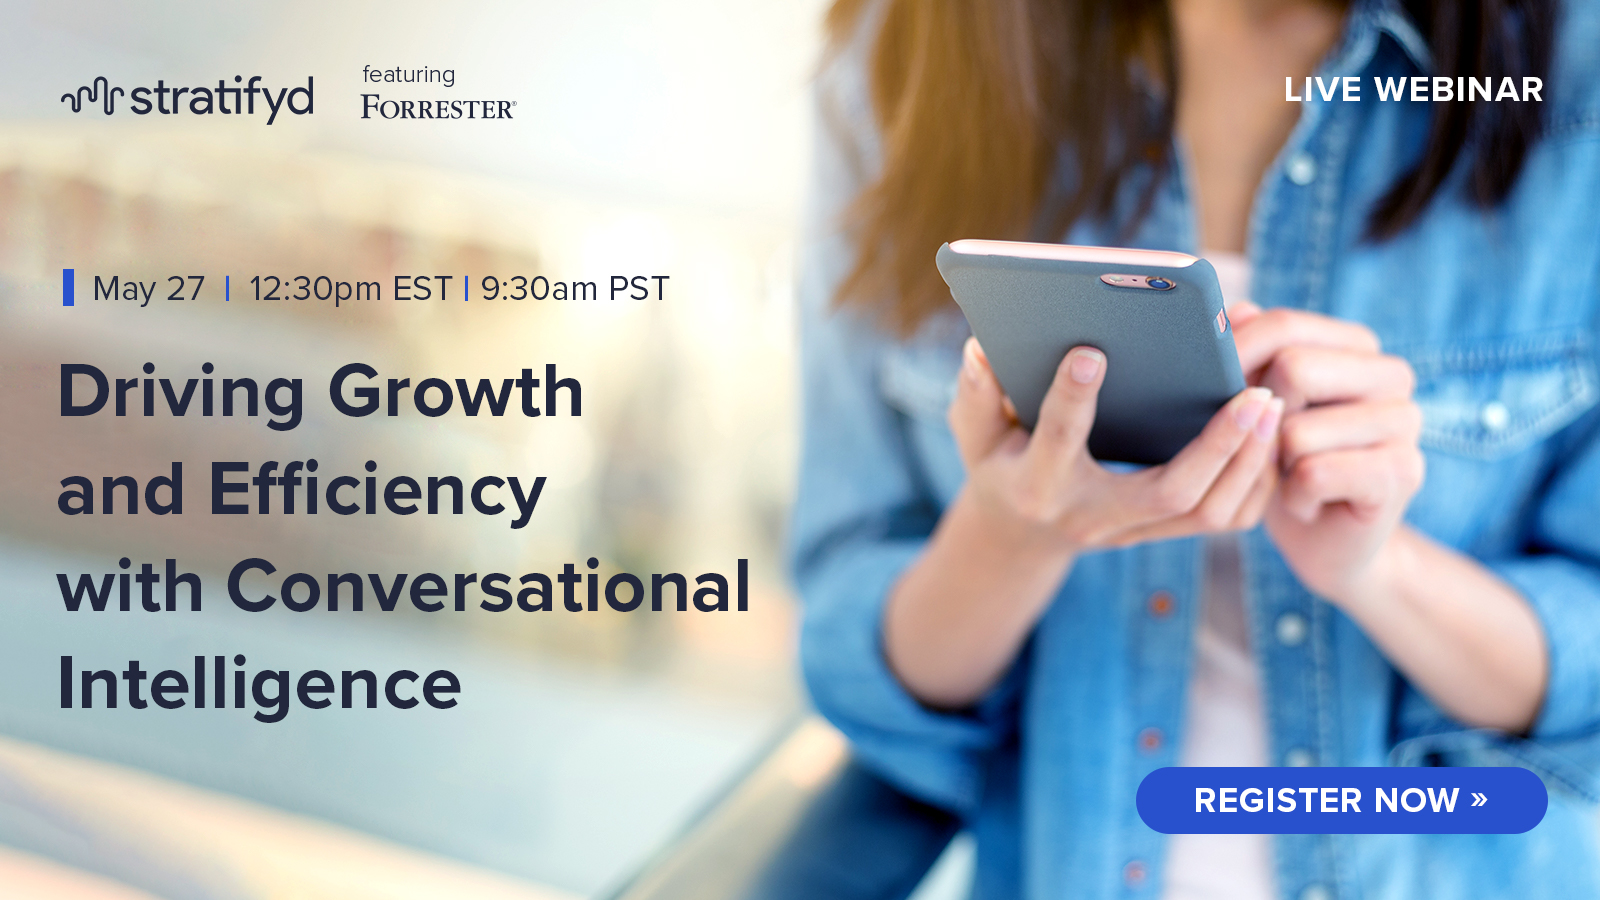 Webinar: Driving Growth and Efficiency with Conversational Intelligence